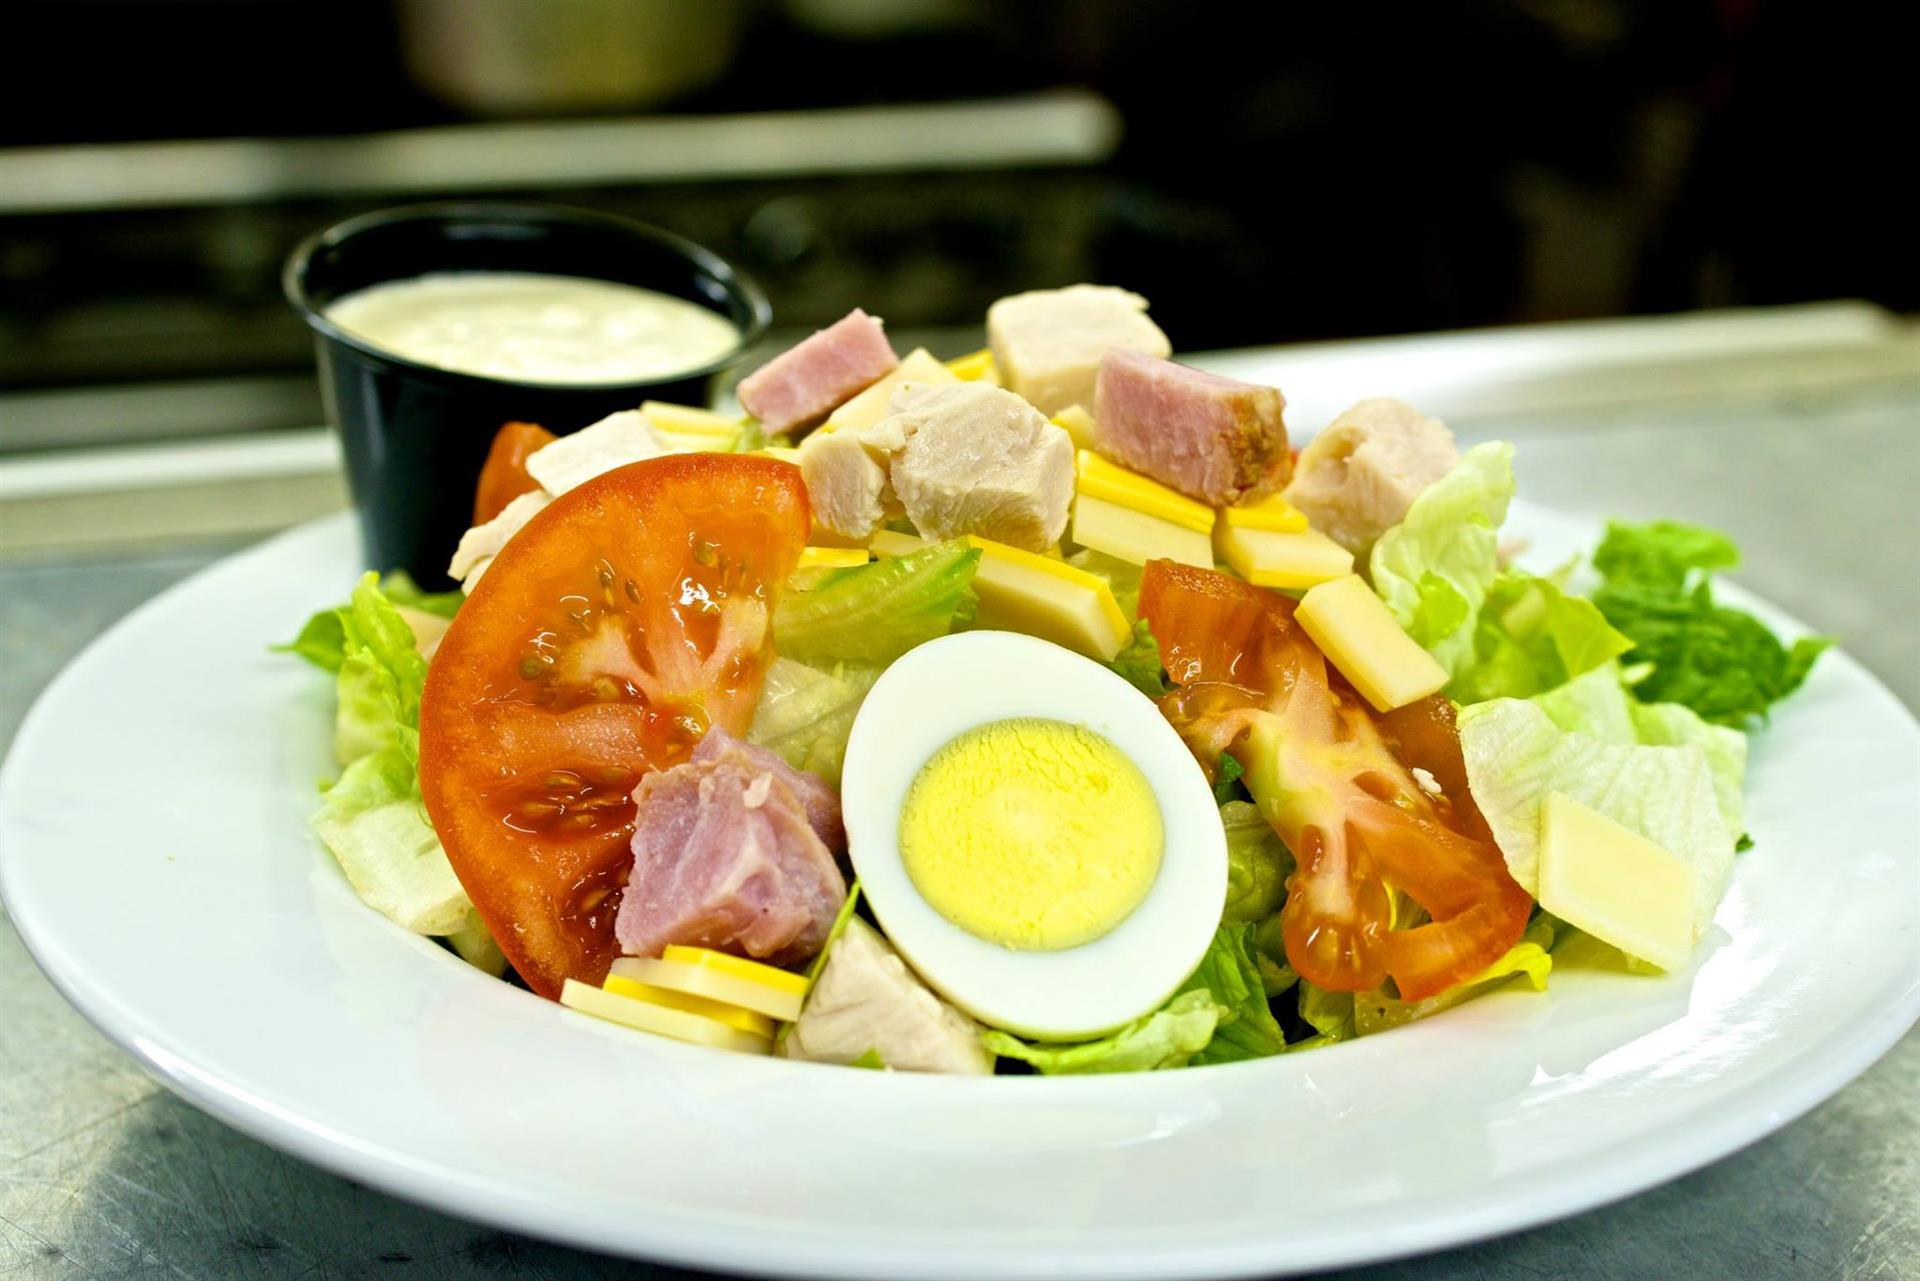 garden salad with lettuce, tomatoes, eggs, ham and cheese with a side of dressing